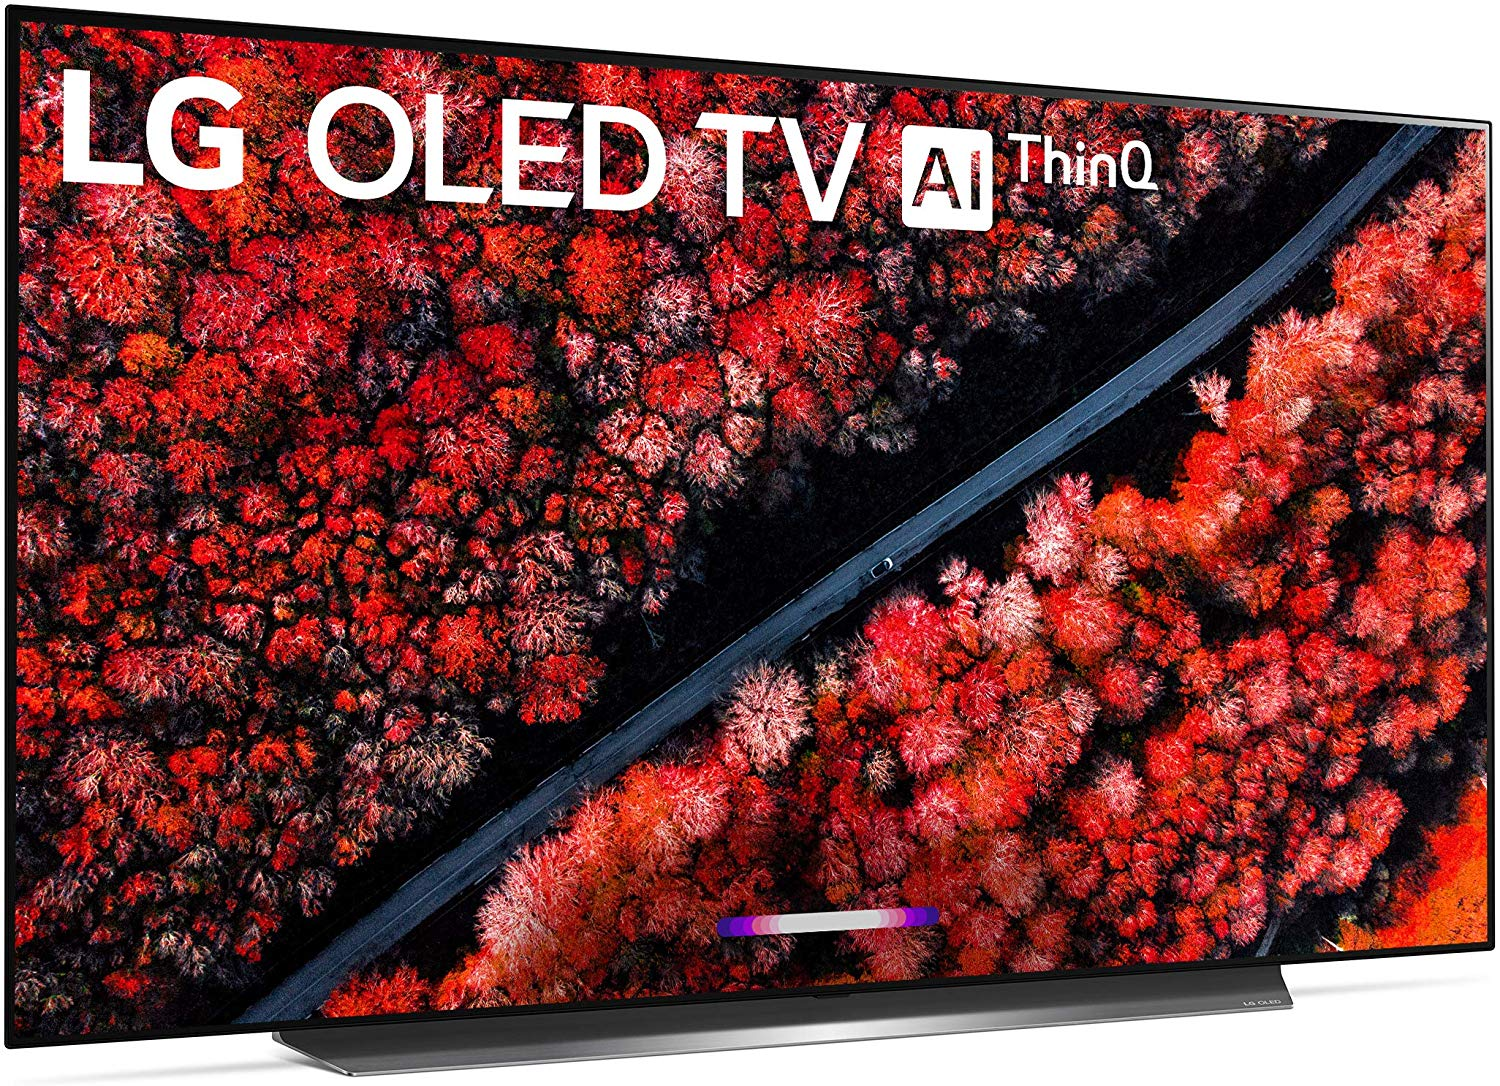 The 65-inch LG C9 4K UltraHD TV is Now Priced at $2200